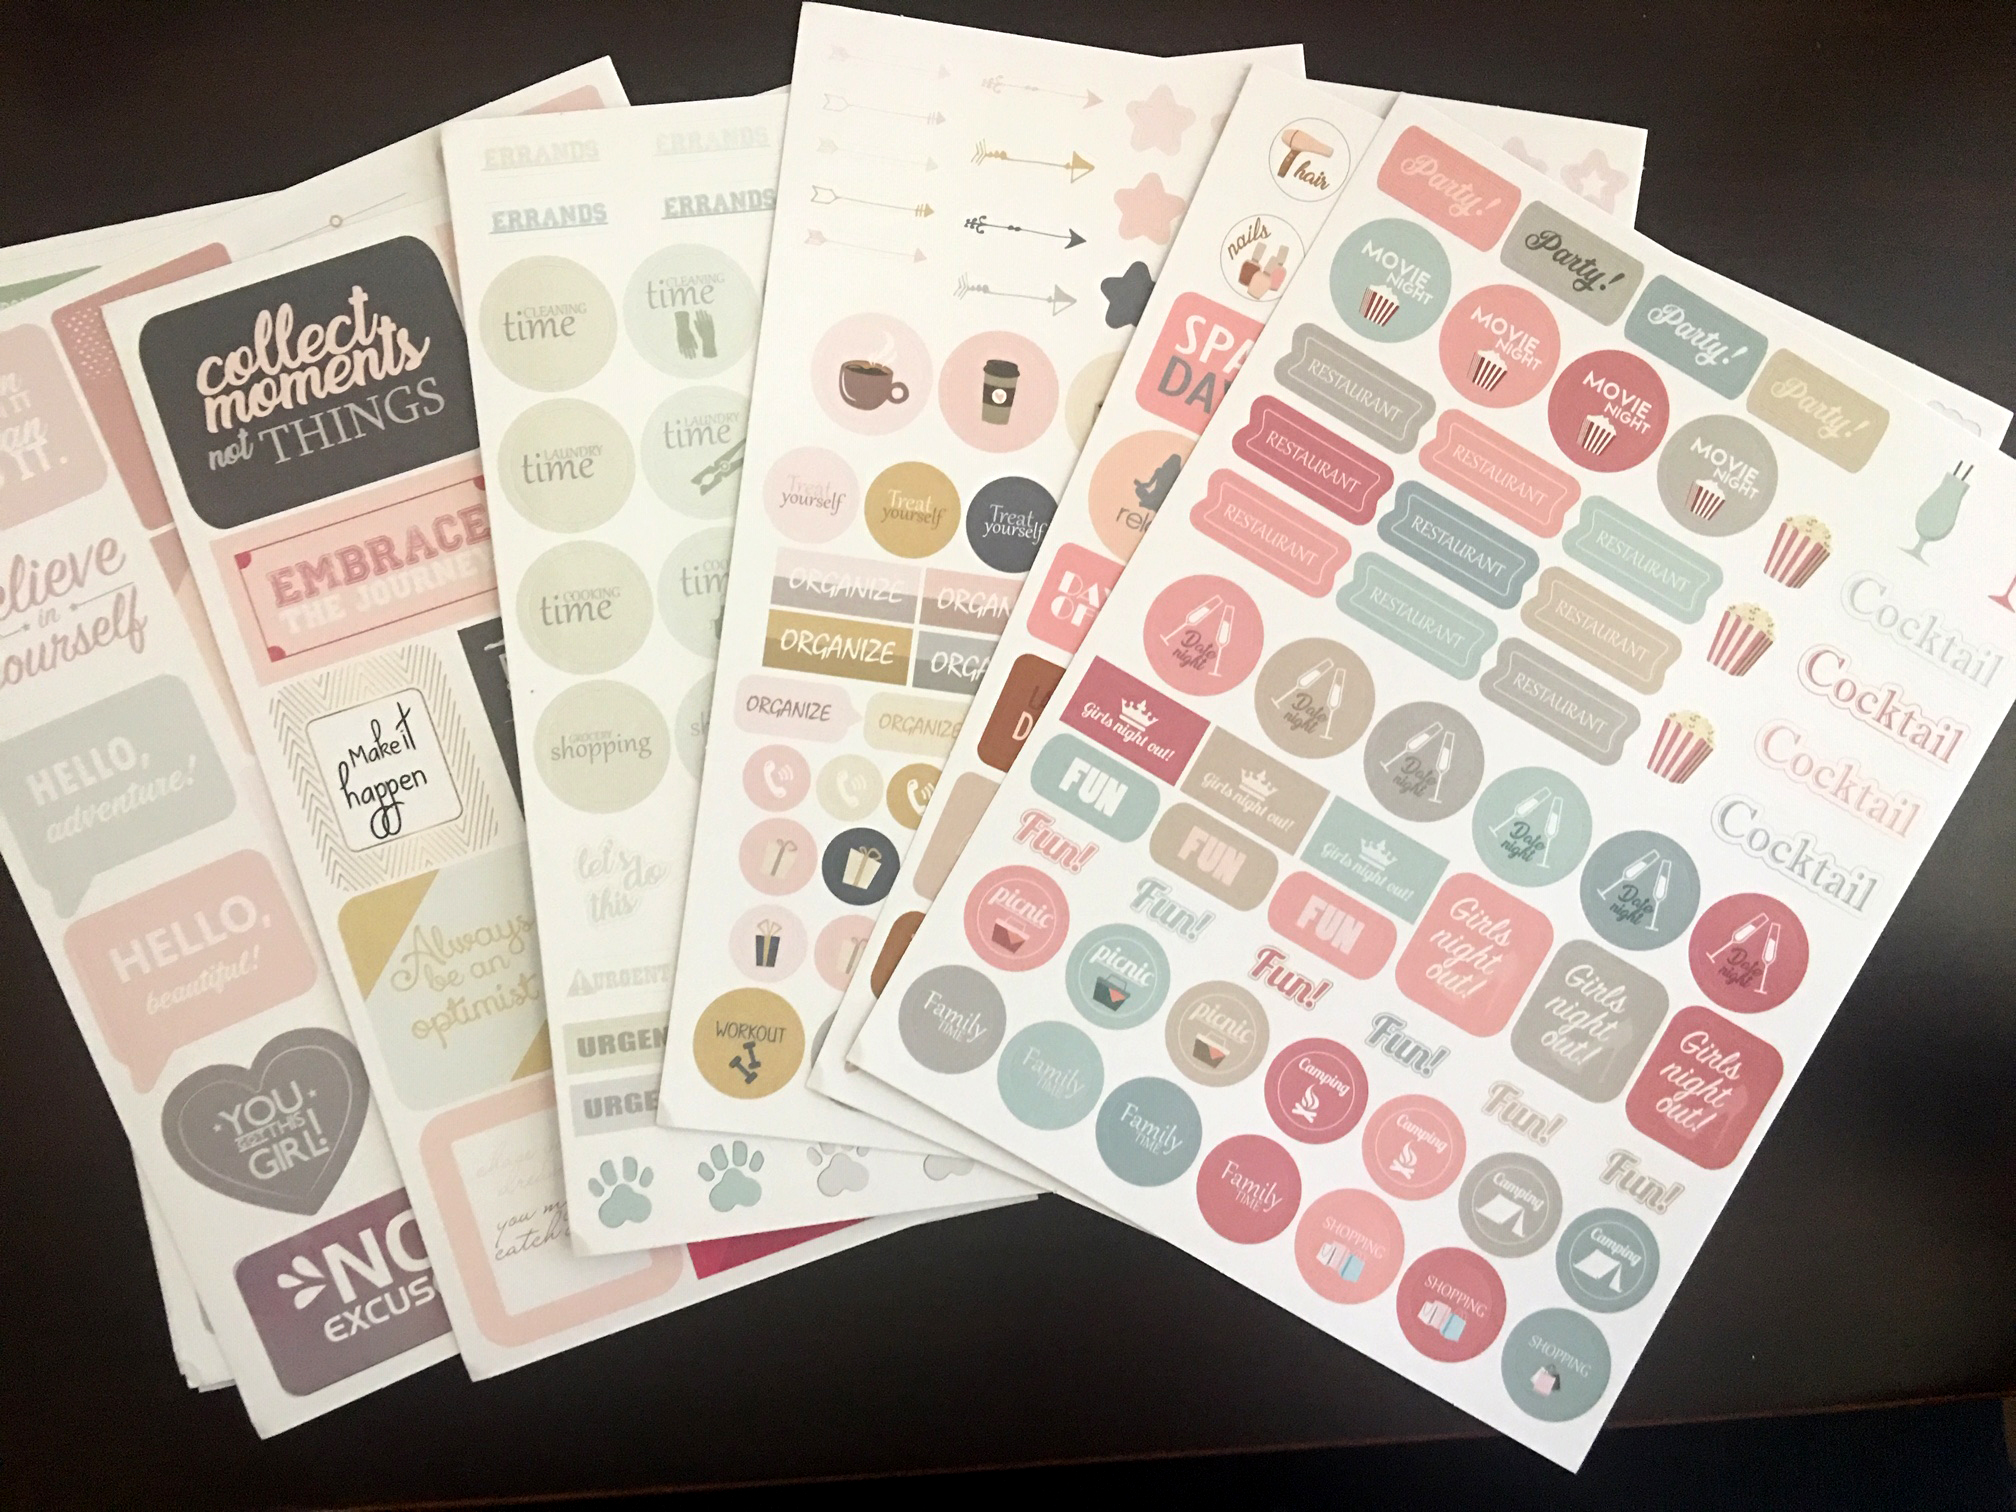 planner stickers - 2 of each sheet. Lots of options here!